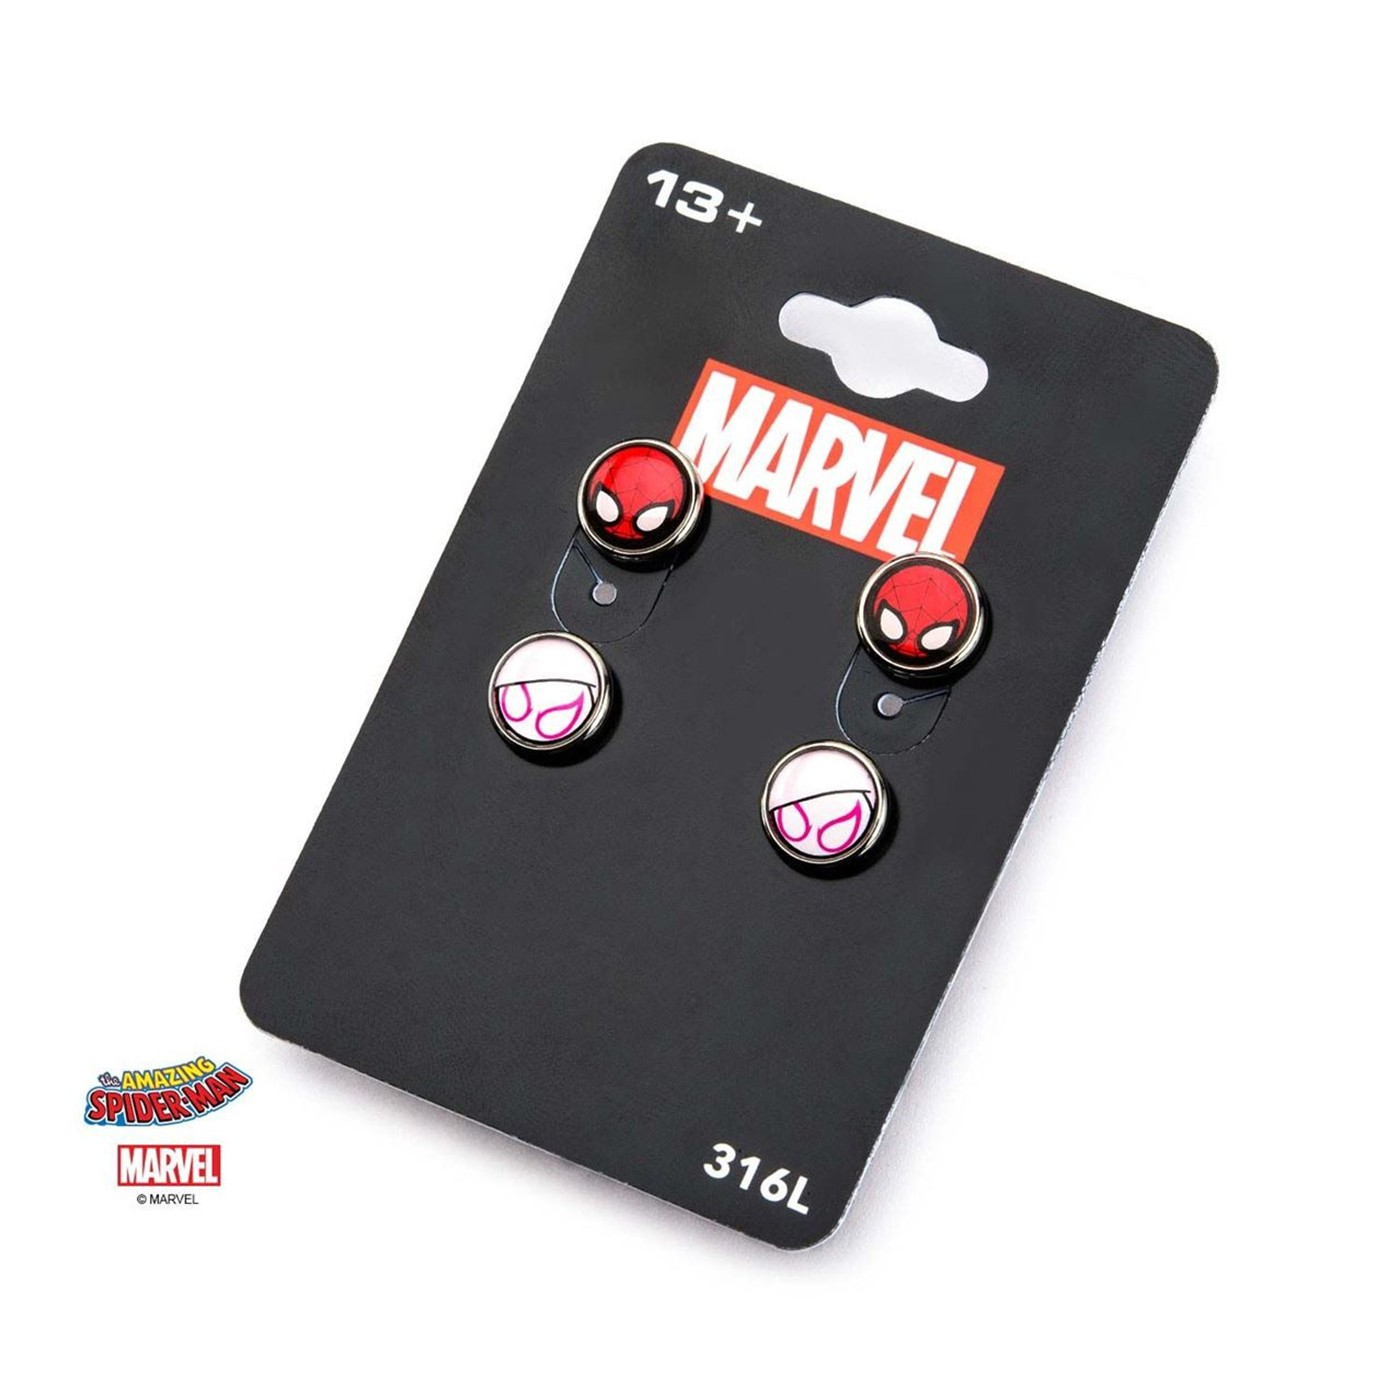 Marvel Base Metal Spider-Gwen Post Stud Earrings Set